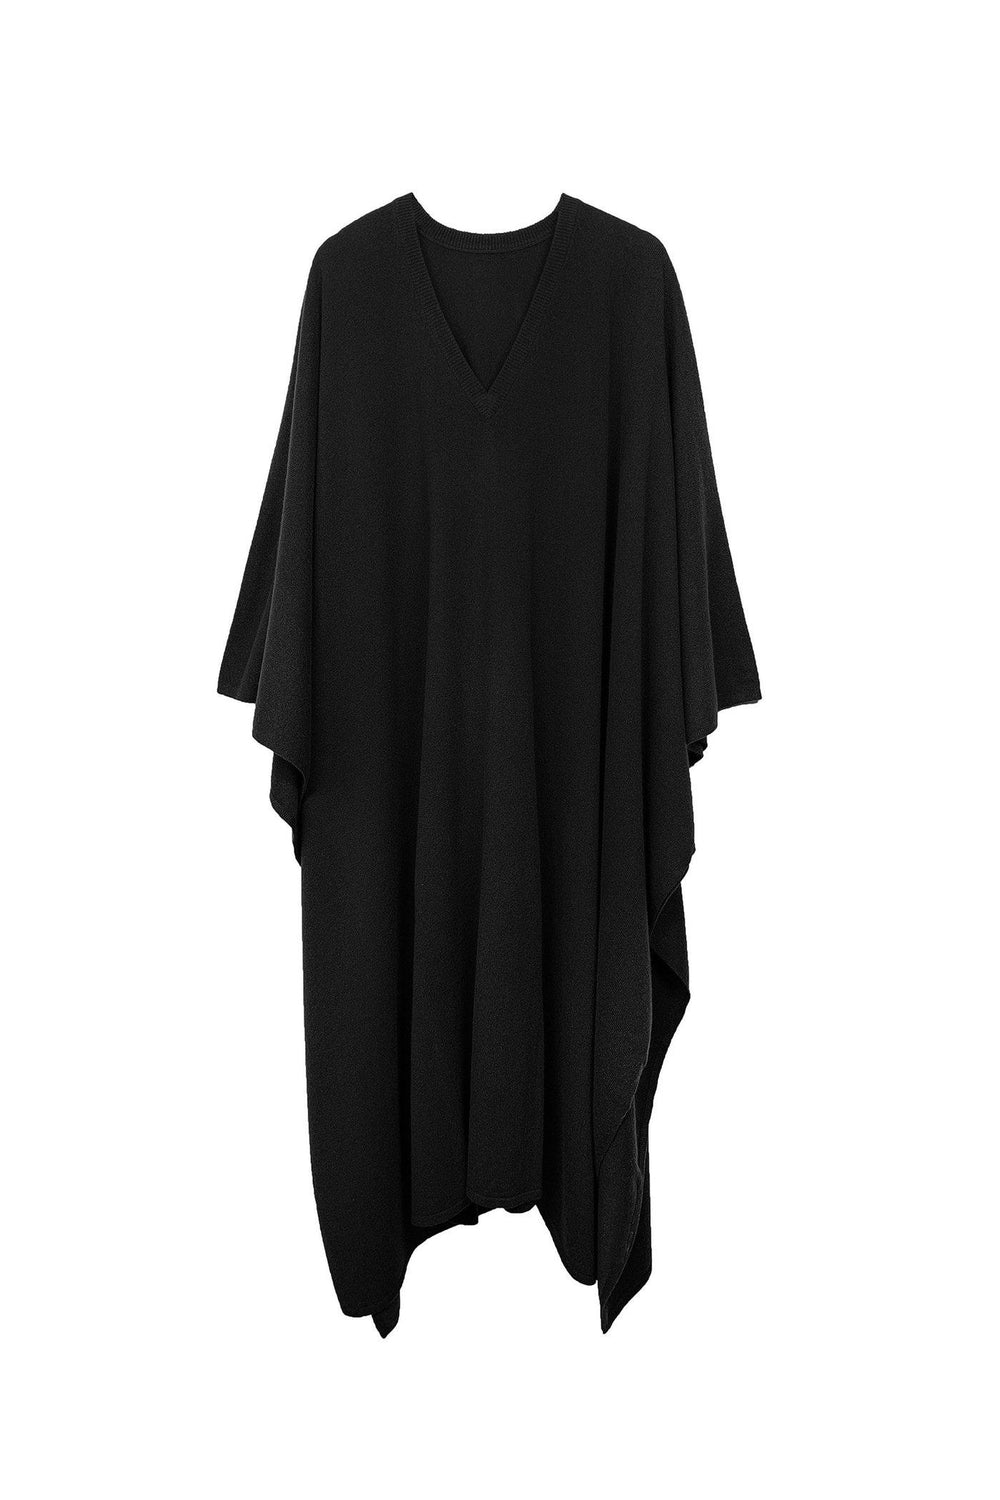 RYAN ROCHE Cashmere knit v-neck caftan in black